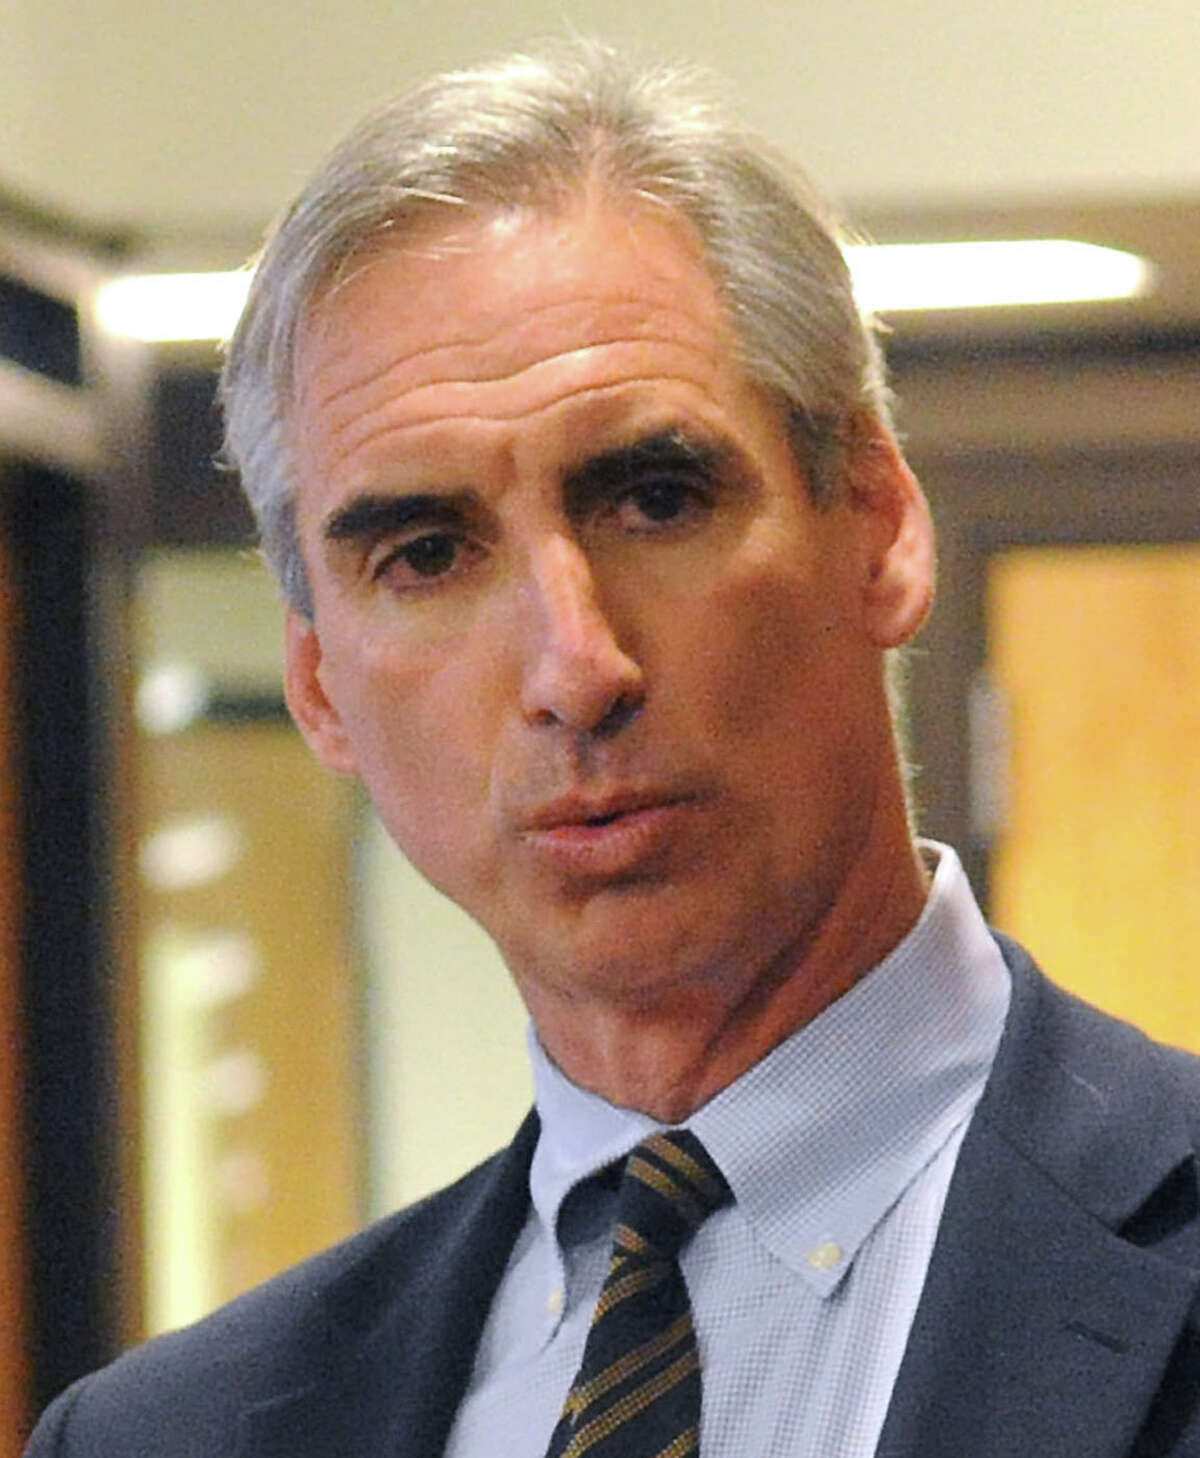 Oliver Luck: West Virginia AD - The former NFL quarterback has extensive sports marketing background, getting stadiums built in Houston, running the Houston Dynamo and even the Frankfurt Galaxy in the World League of American Football. Younger UT alums like how he got beer into Mountaineer Stadium and has been a forceful national ally for that movement. And he's Andrew Luck's dad. Odds: 3-1